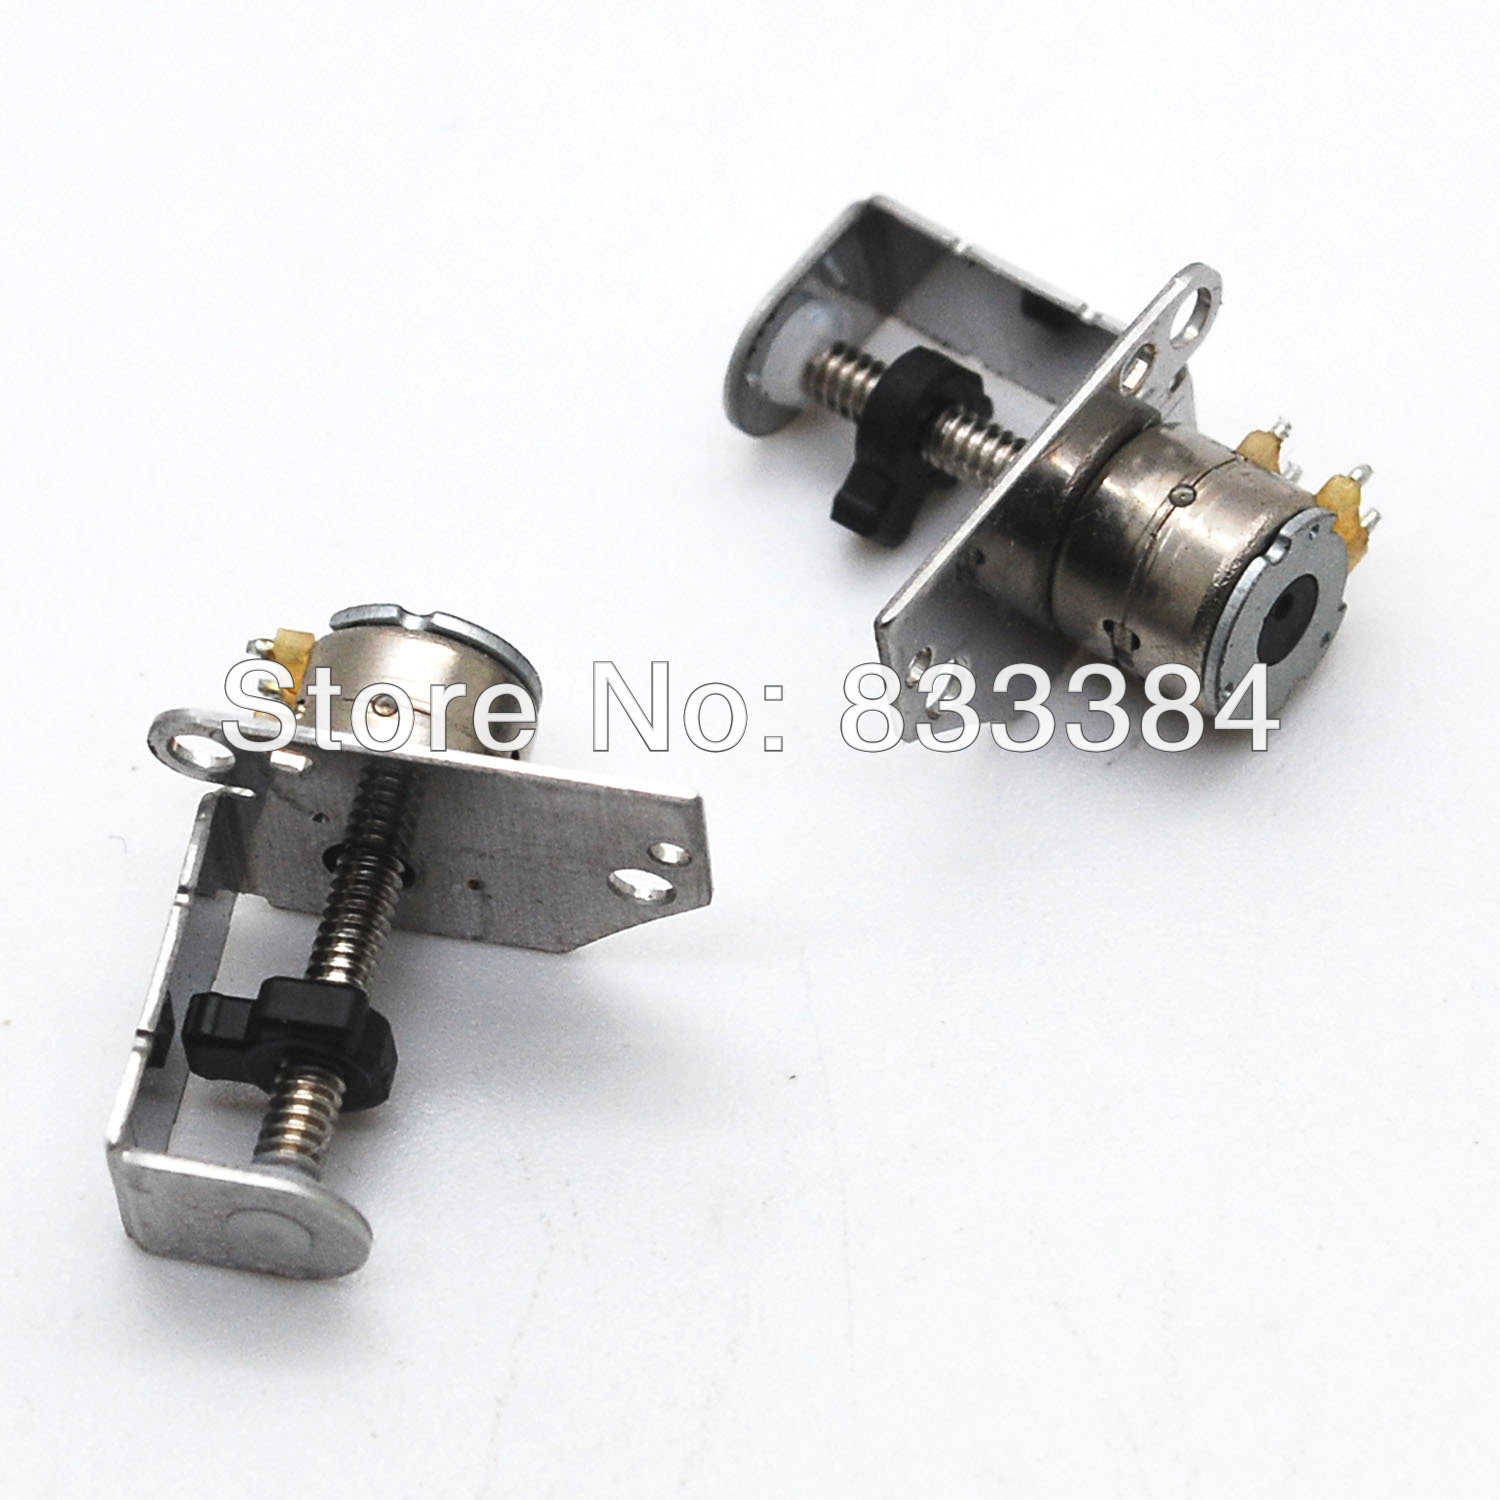 Wire Stepper Motor Micro Stepping Motor Stepper Motor With Circuit